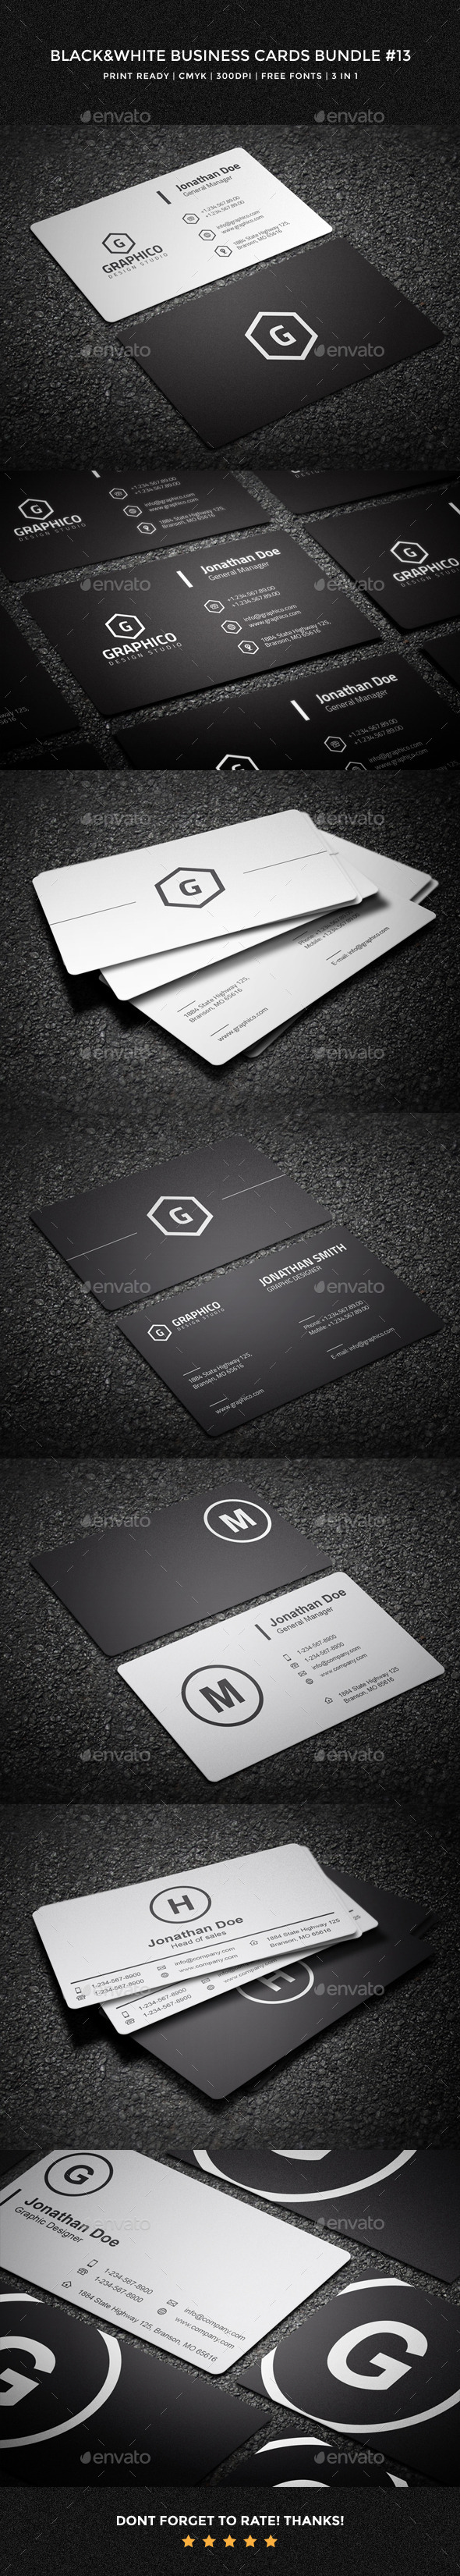 GraphicRiver Black & White Business Cards Bundle 13 11089859